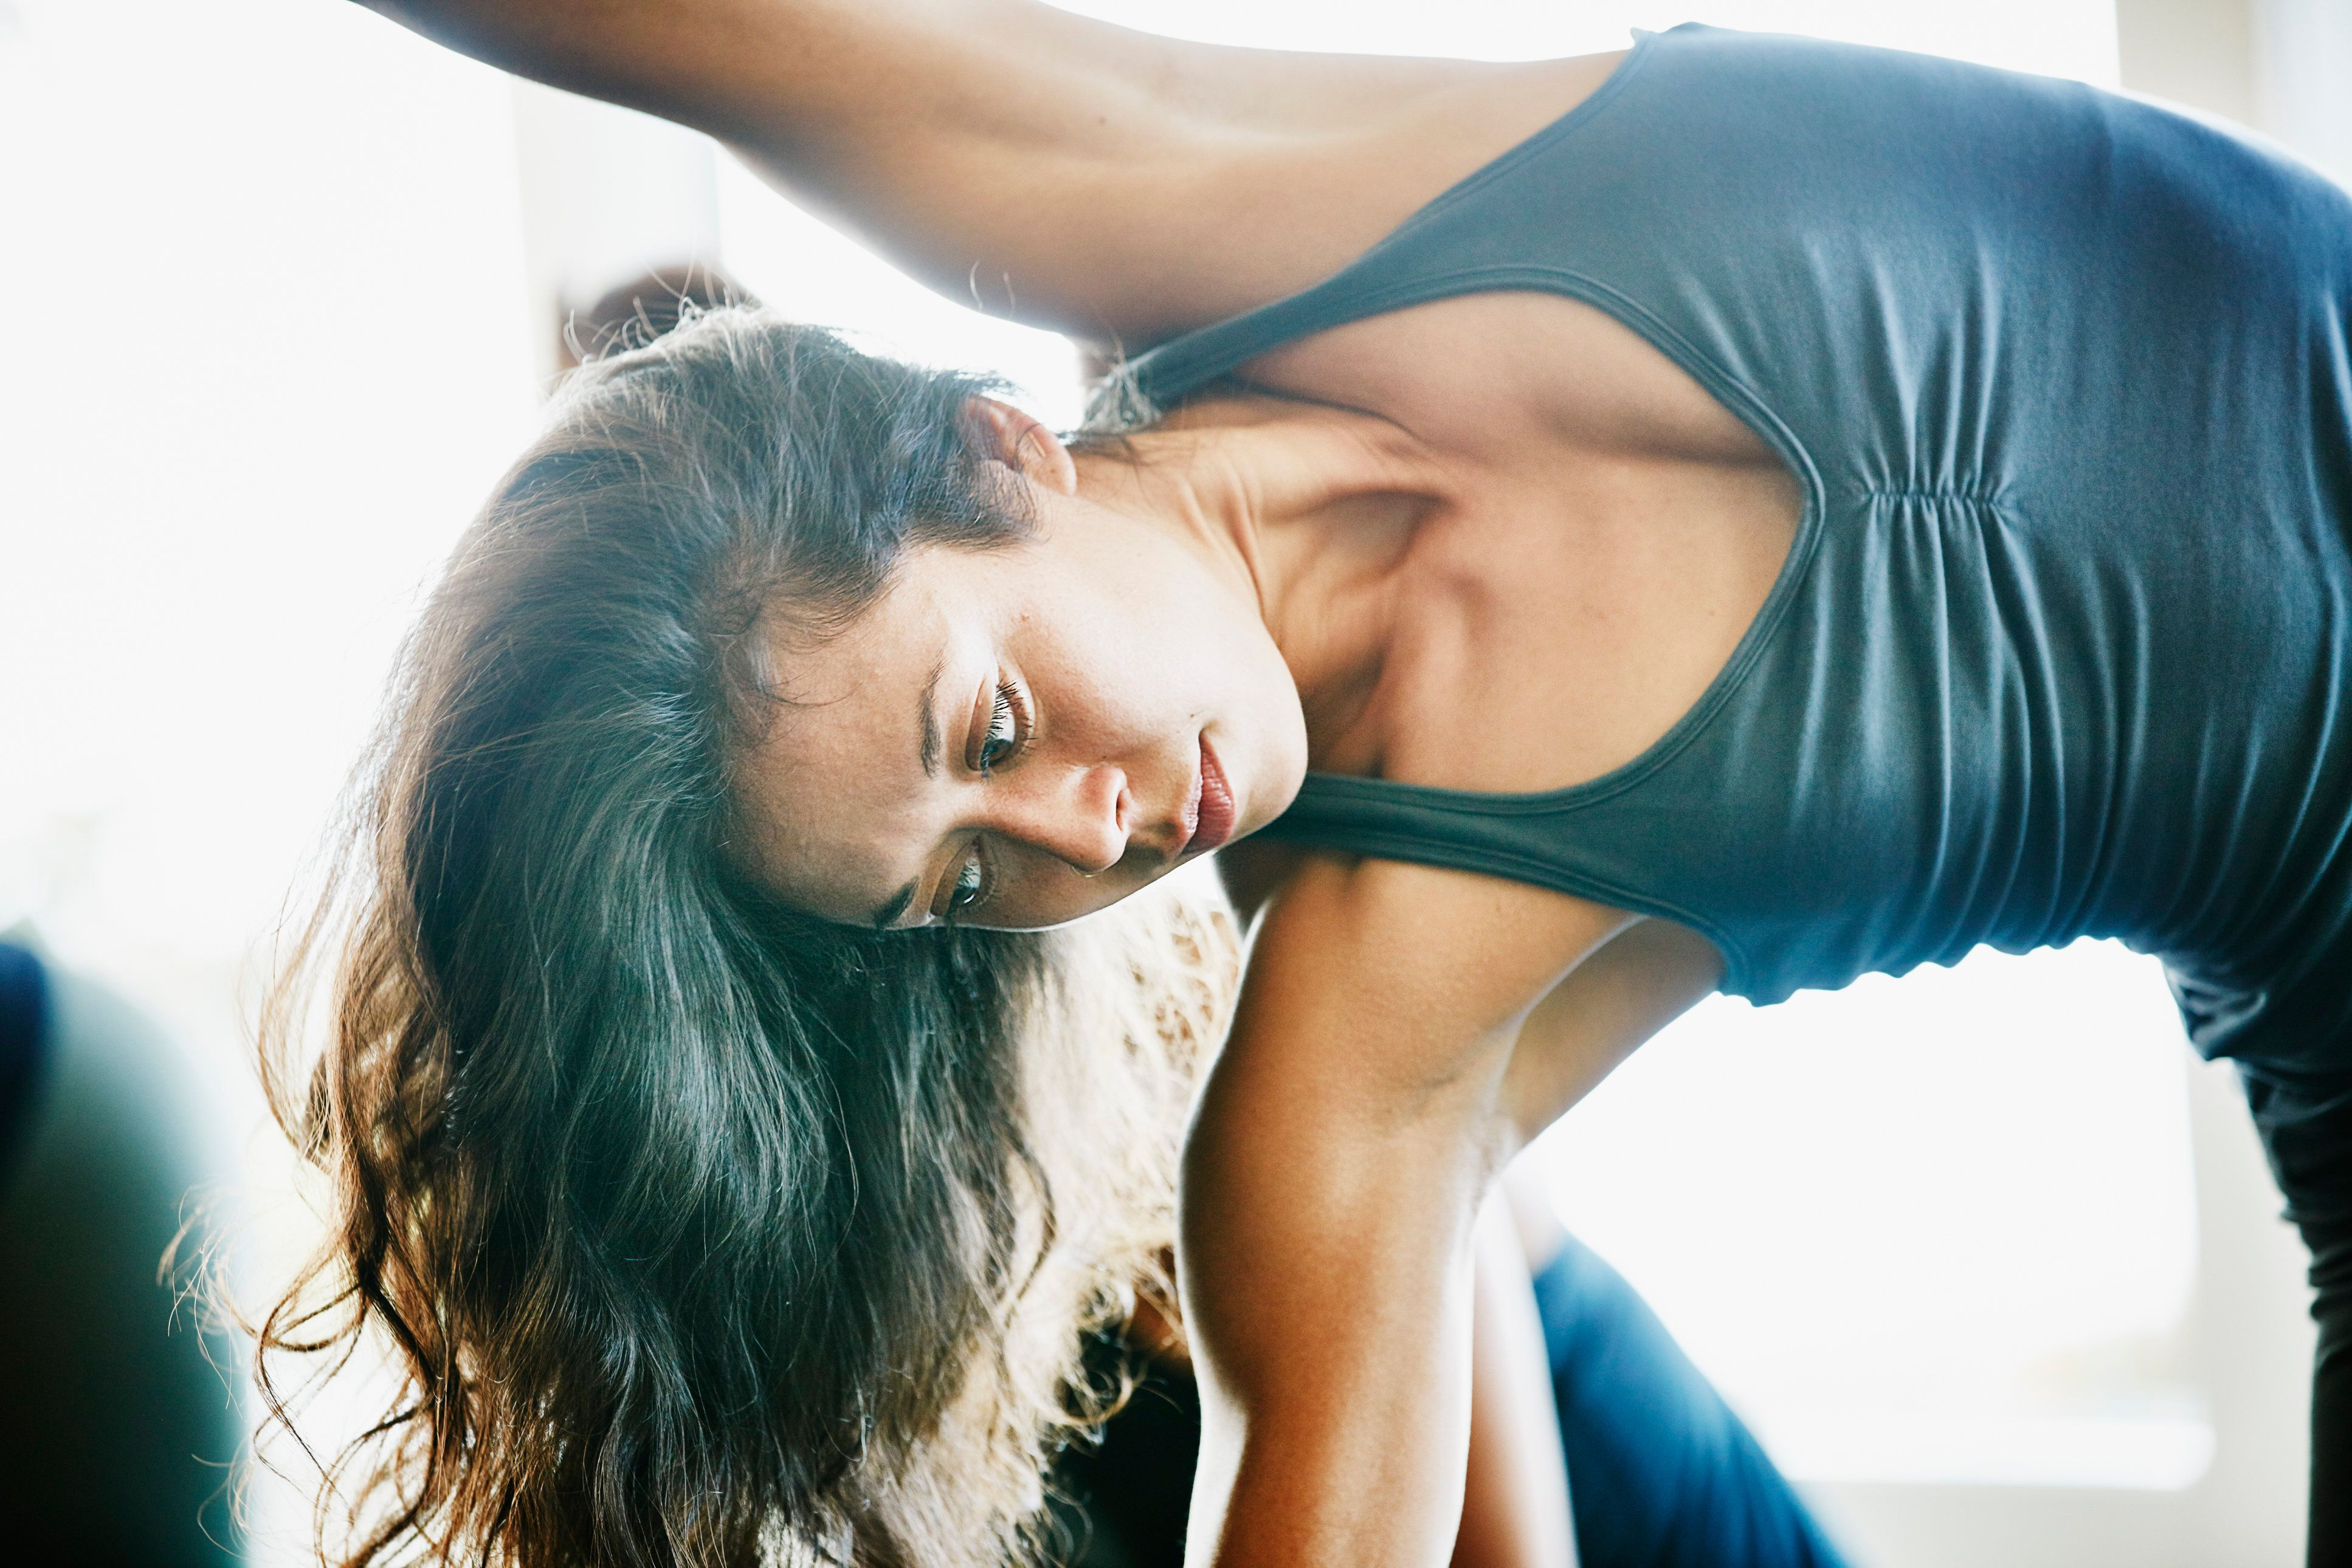 The yoga group also saw bigger reductions in their symptoms of depressionand anxiety than did the brain-training group, in a new small-scale study.